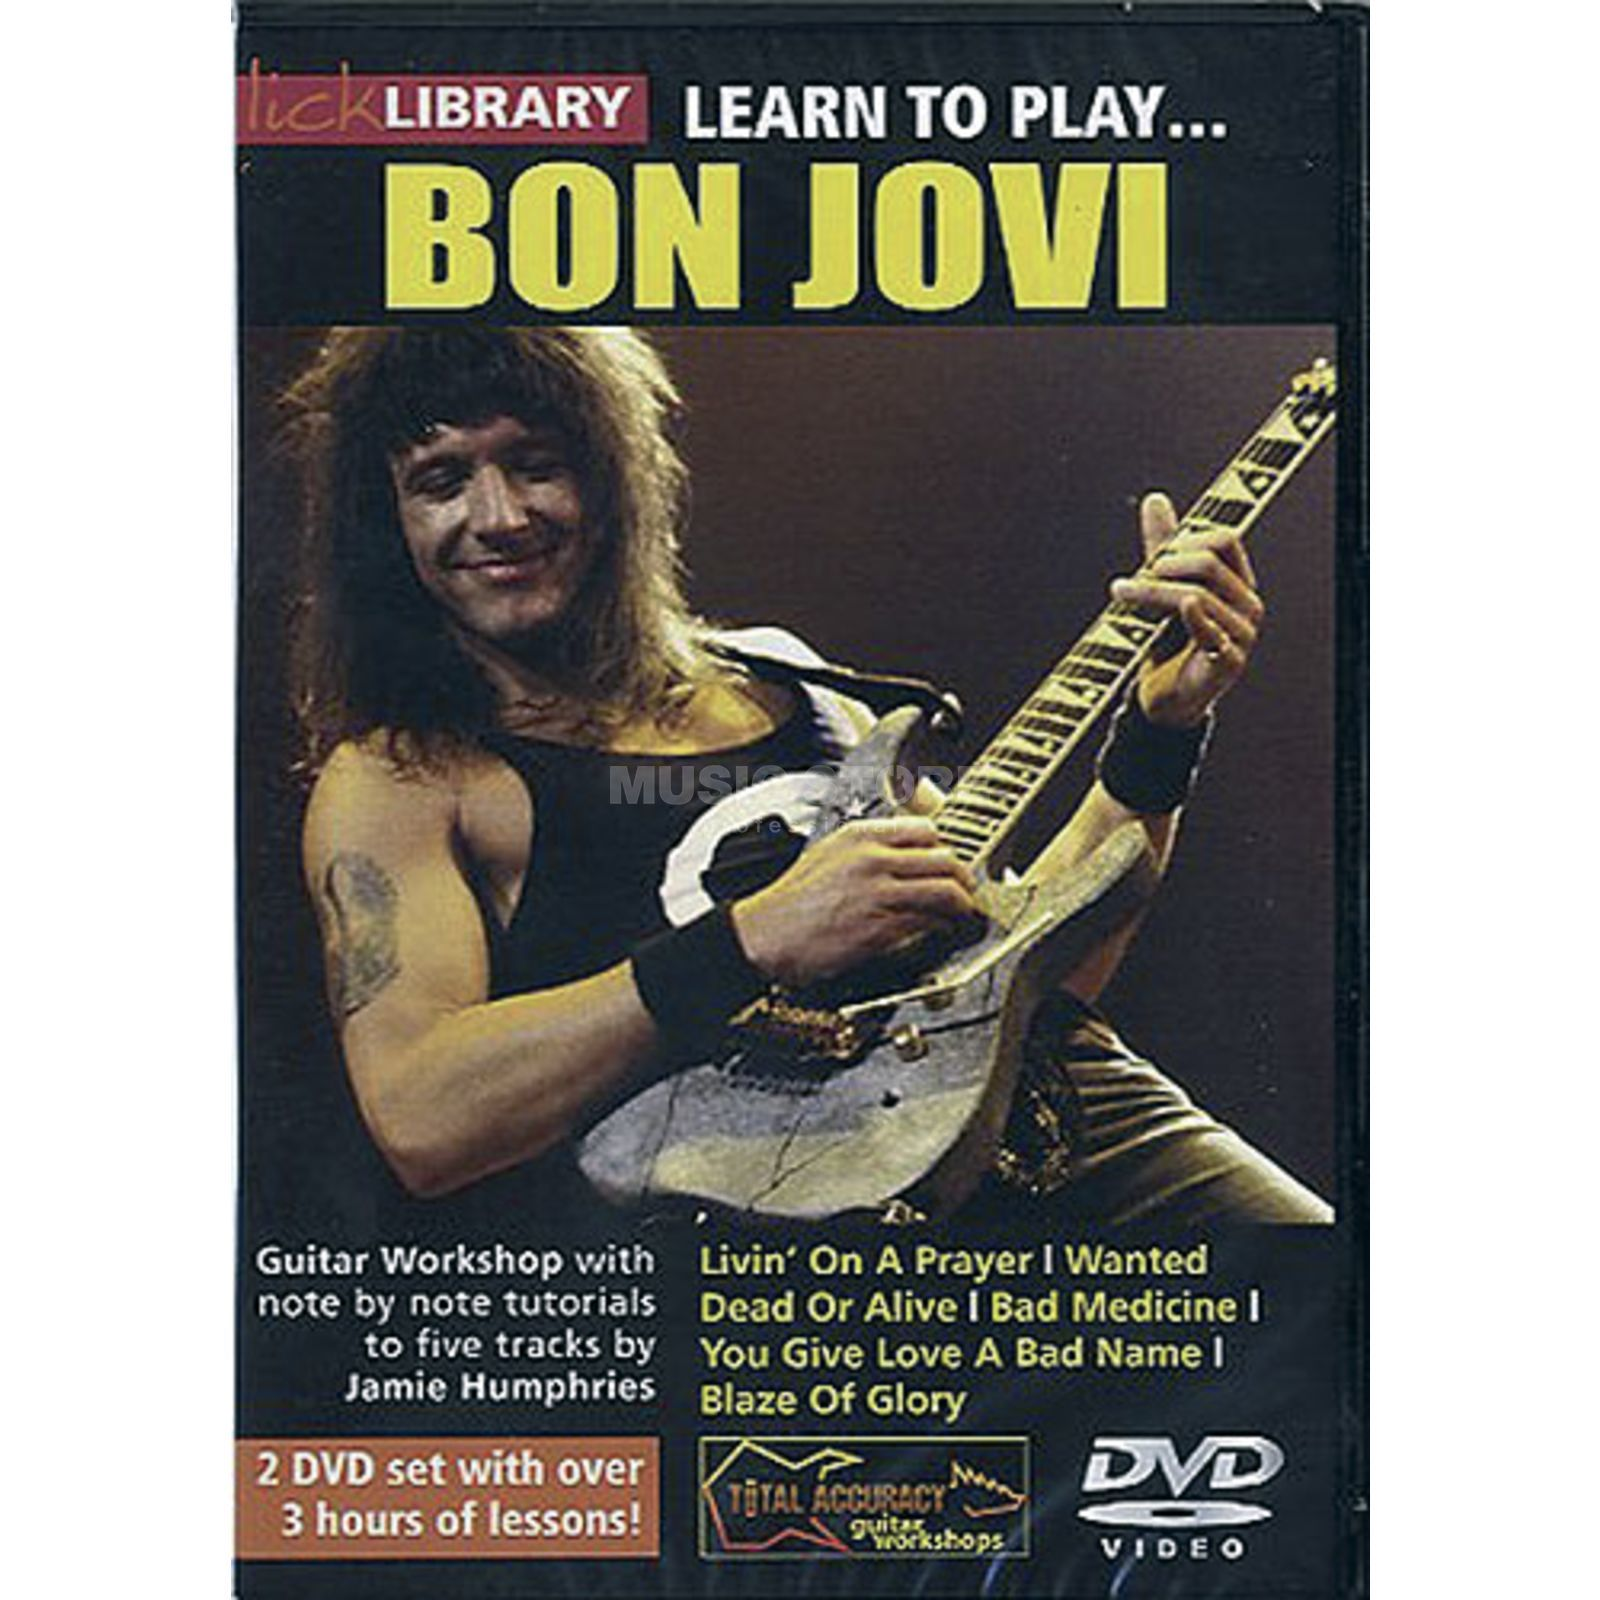 Roadrock International Lick Library: Learn To Play Bon Jovi DVD Produktbillede